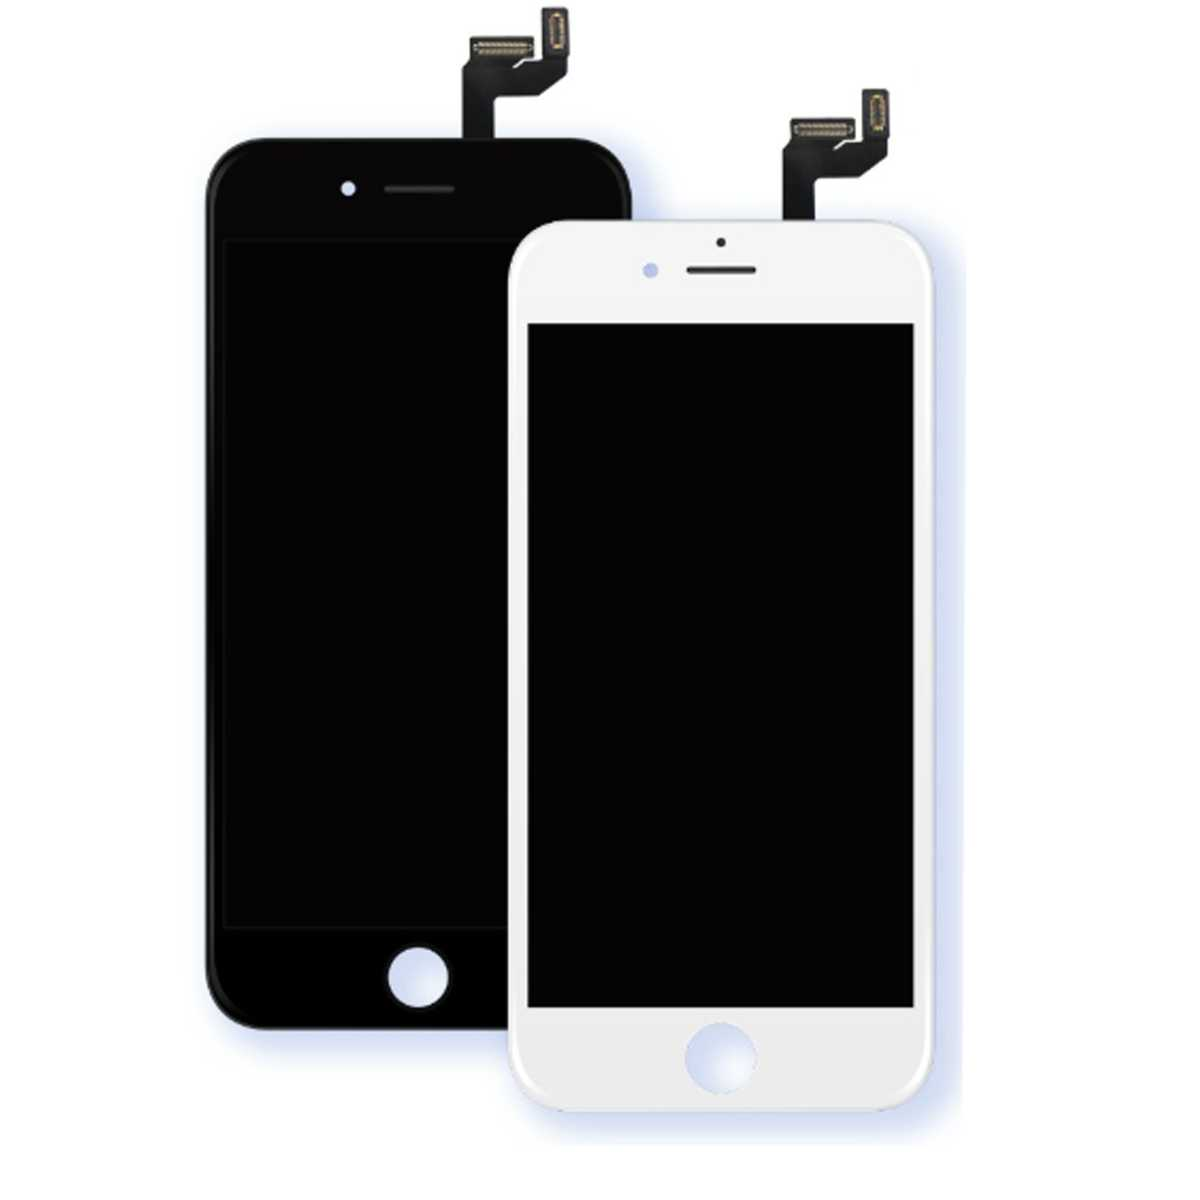 brand new 8c161 8798c Complete original Display teared down from iPhone 6S (4,7